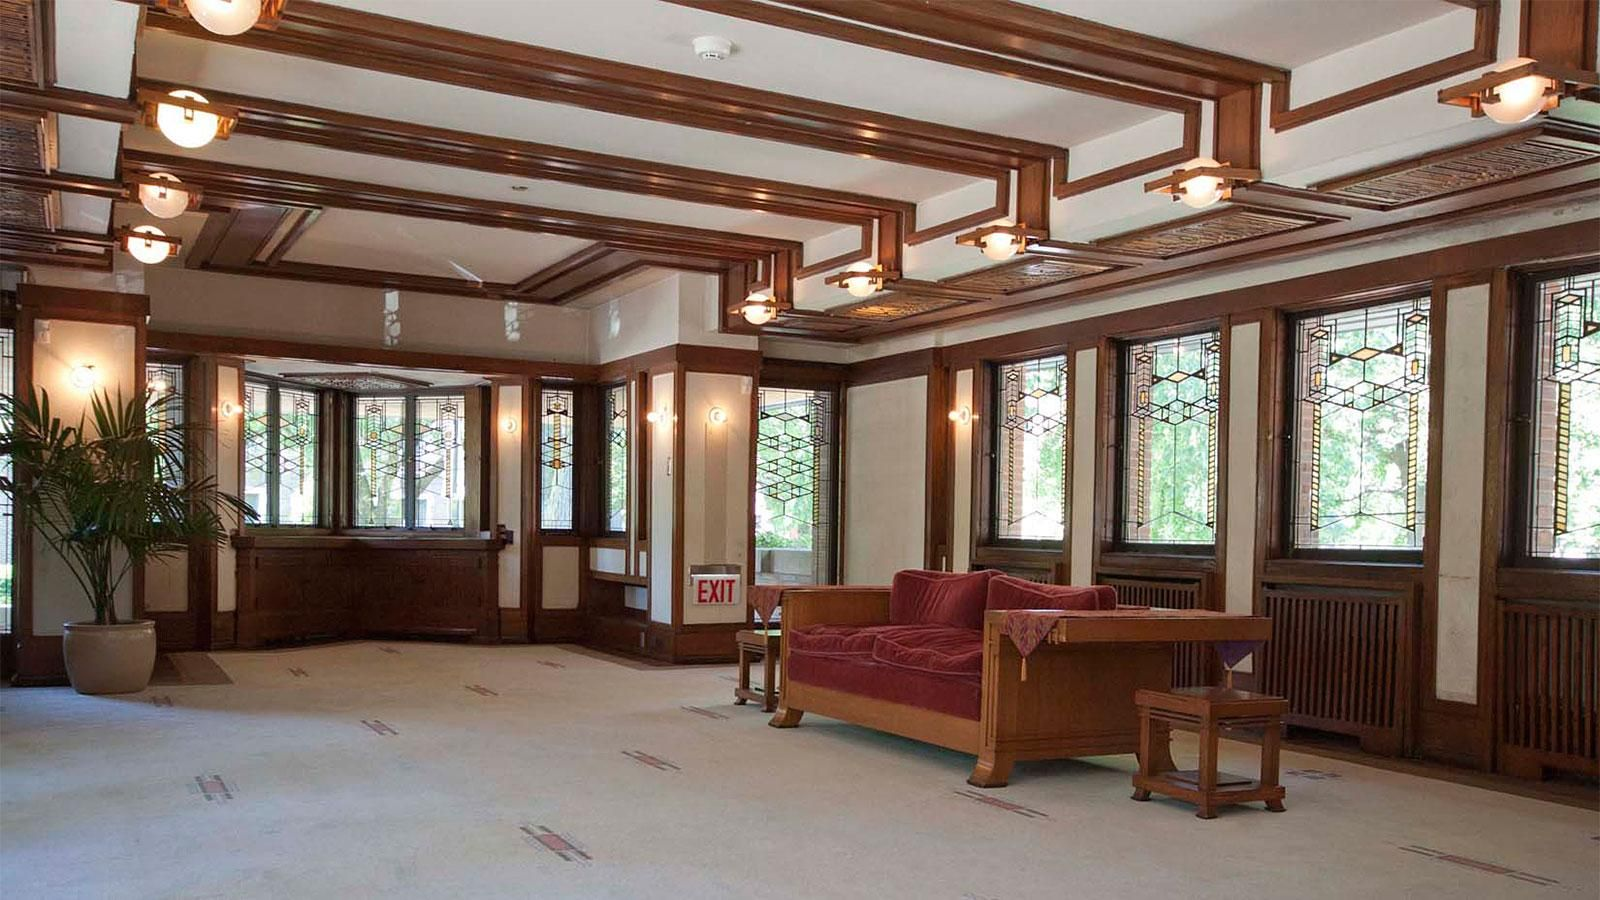 Robie House Throughout The 19th Century, Home Design In America Took Its  Cues From Our